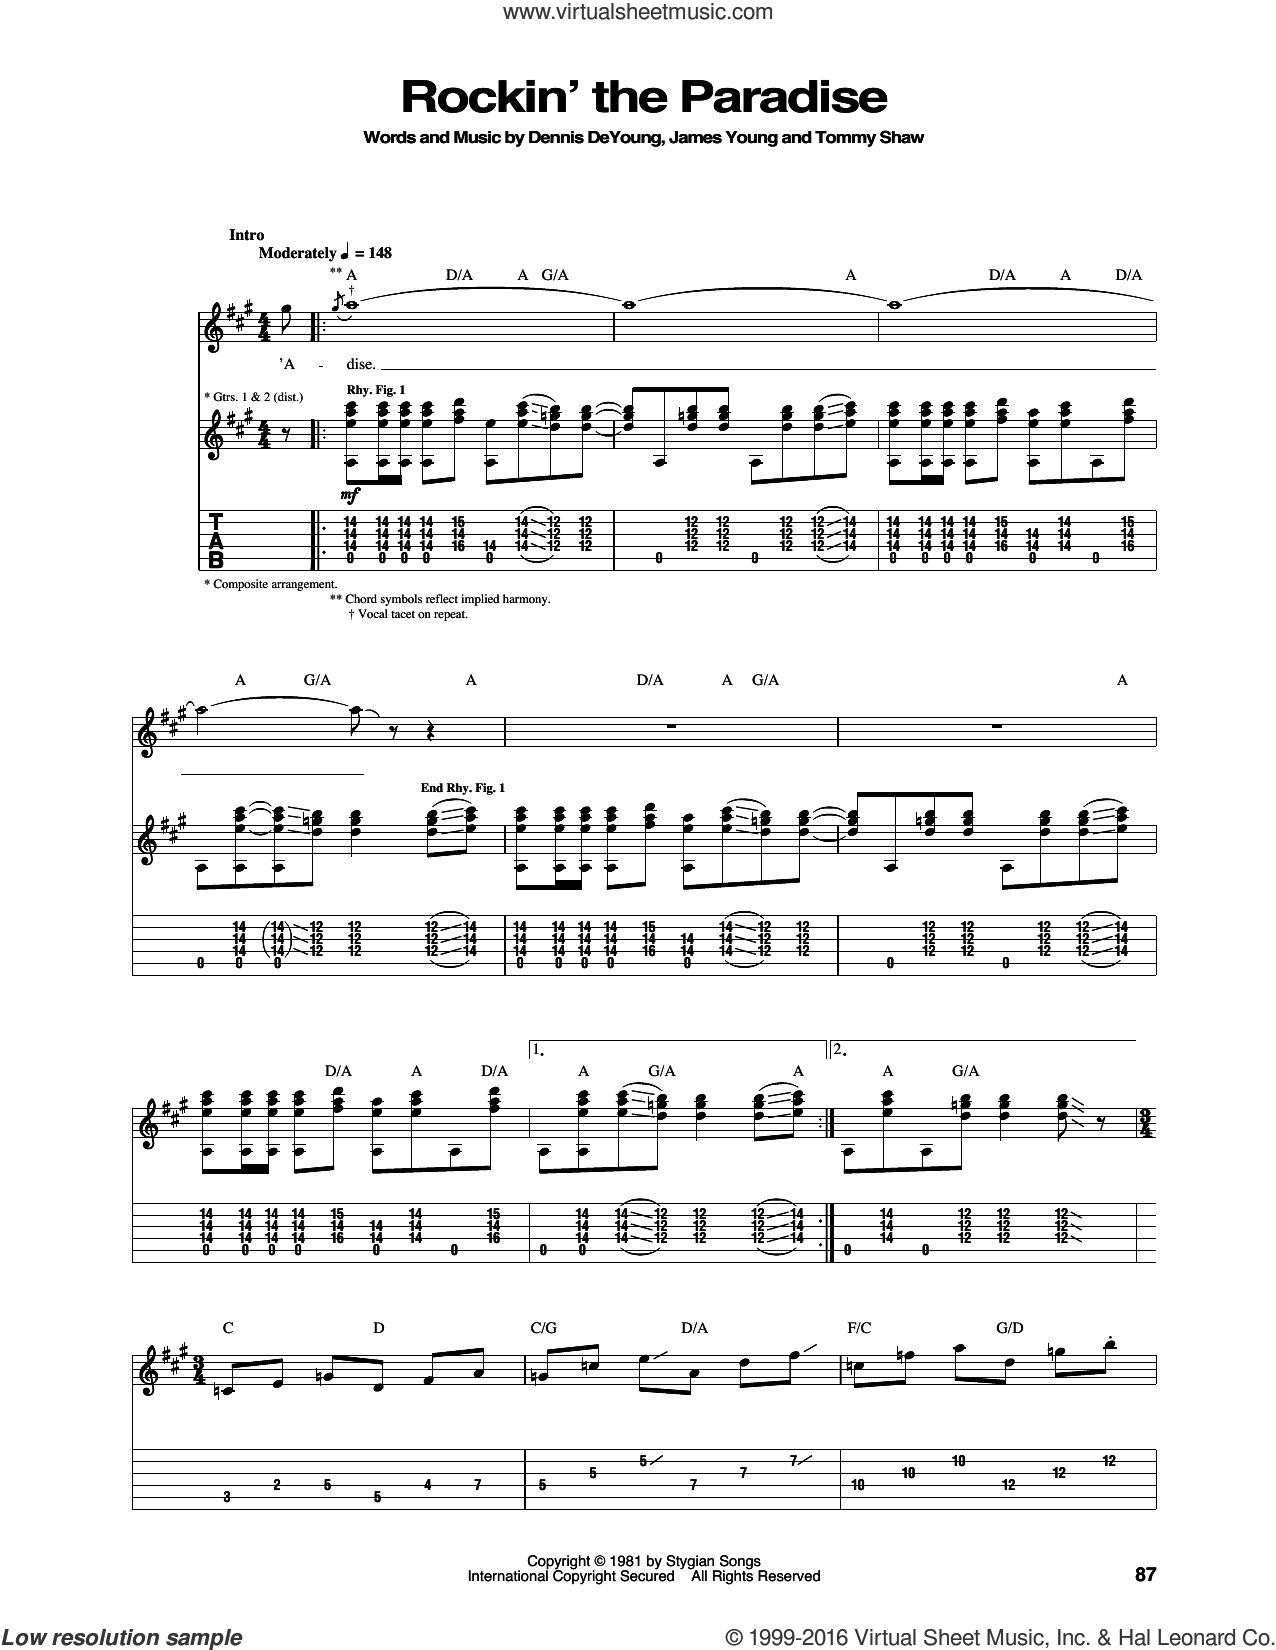 Rockin' The Paradise sheet music for guitar (tablature) by Styx, Dennis DeYoung, James Young and Tommy Shaw, intermediate skill level